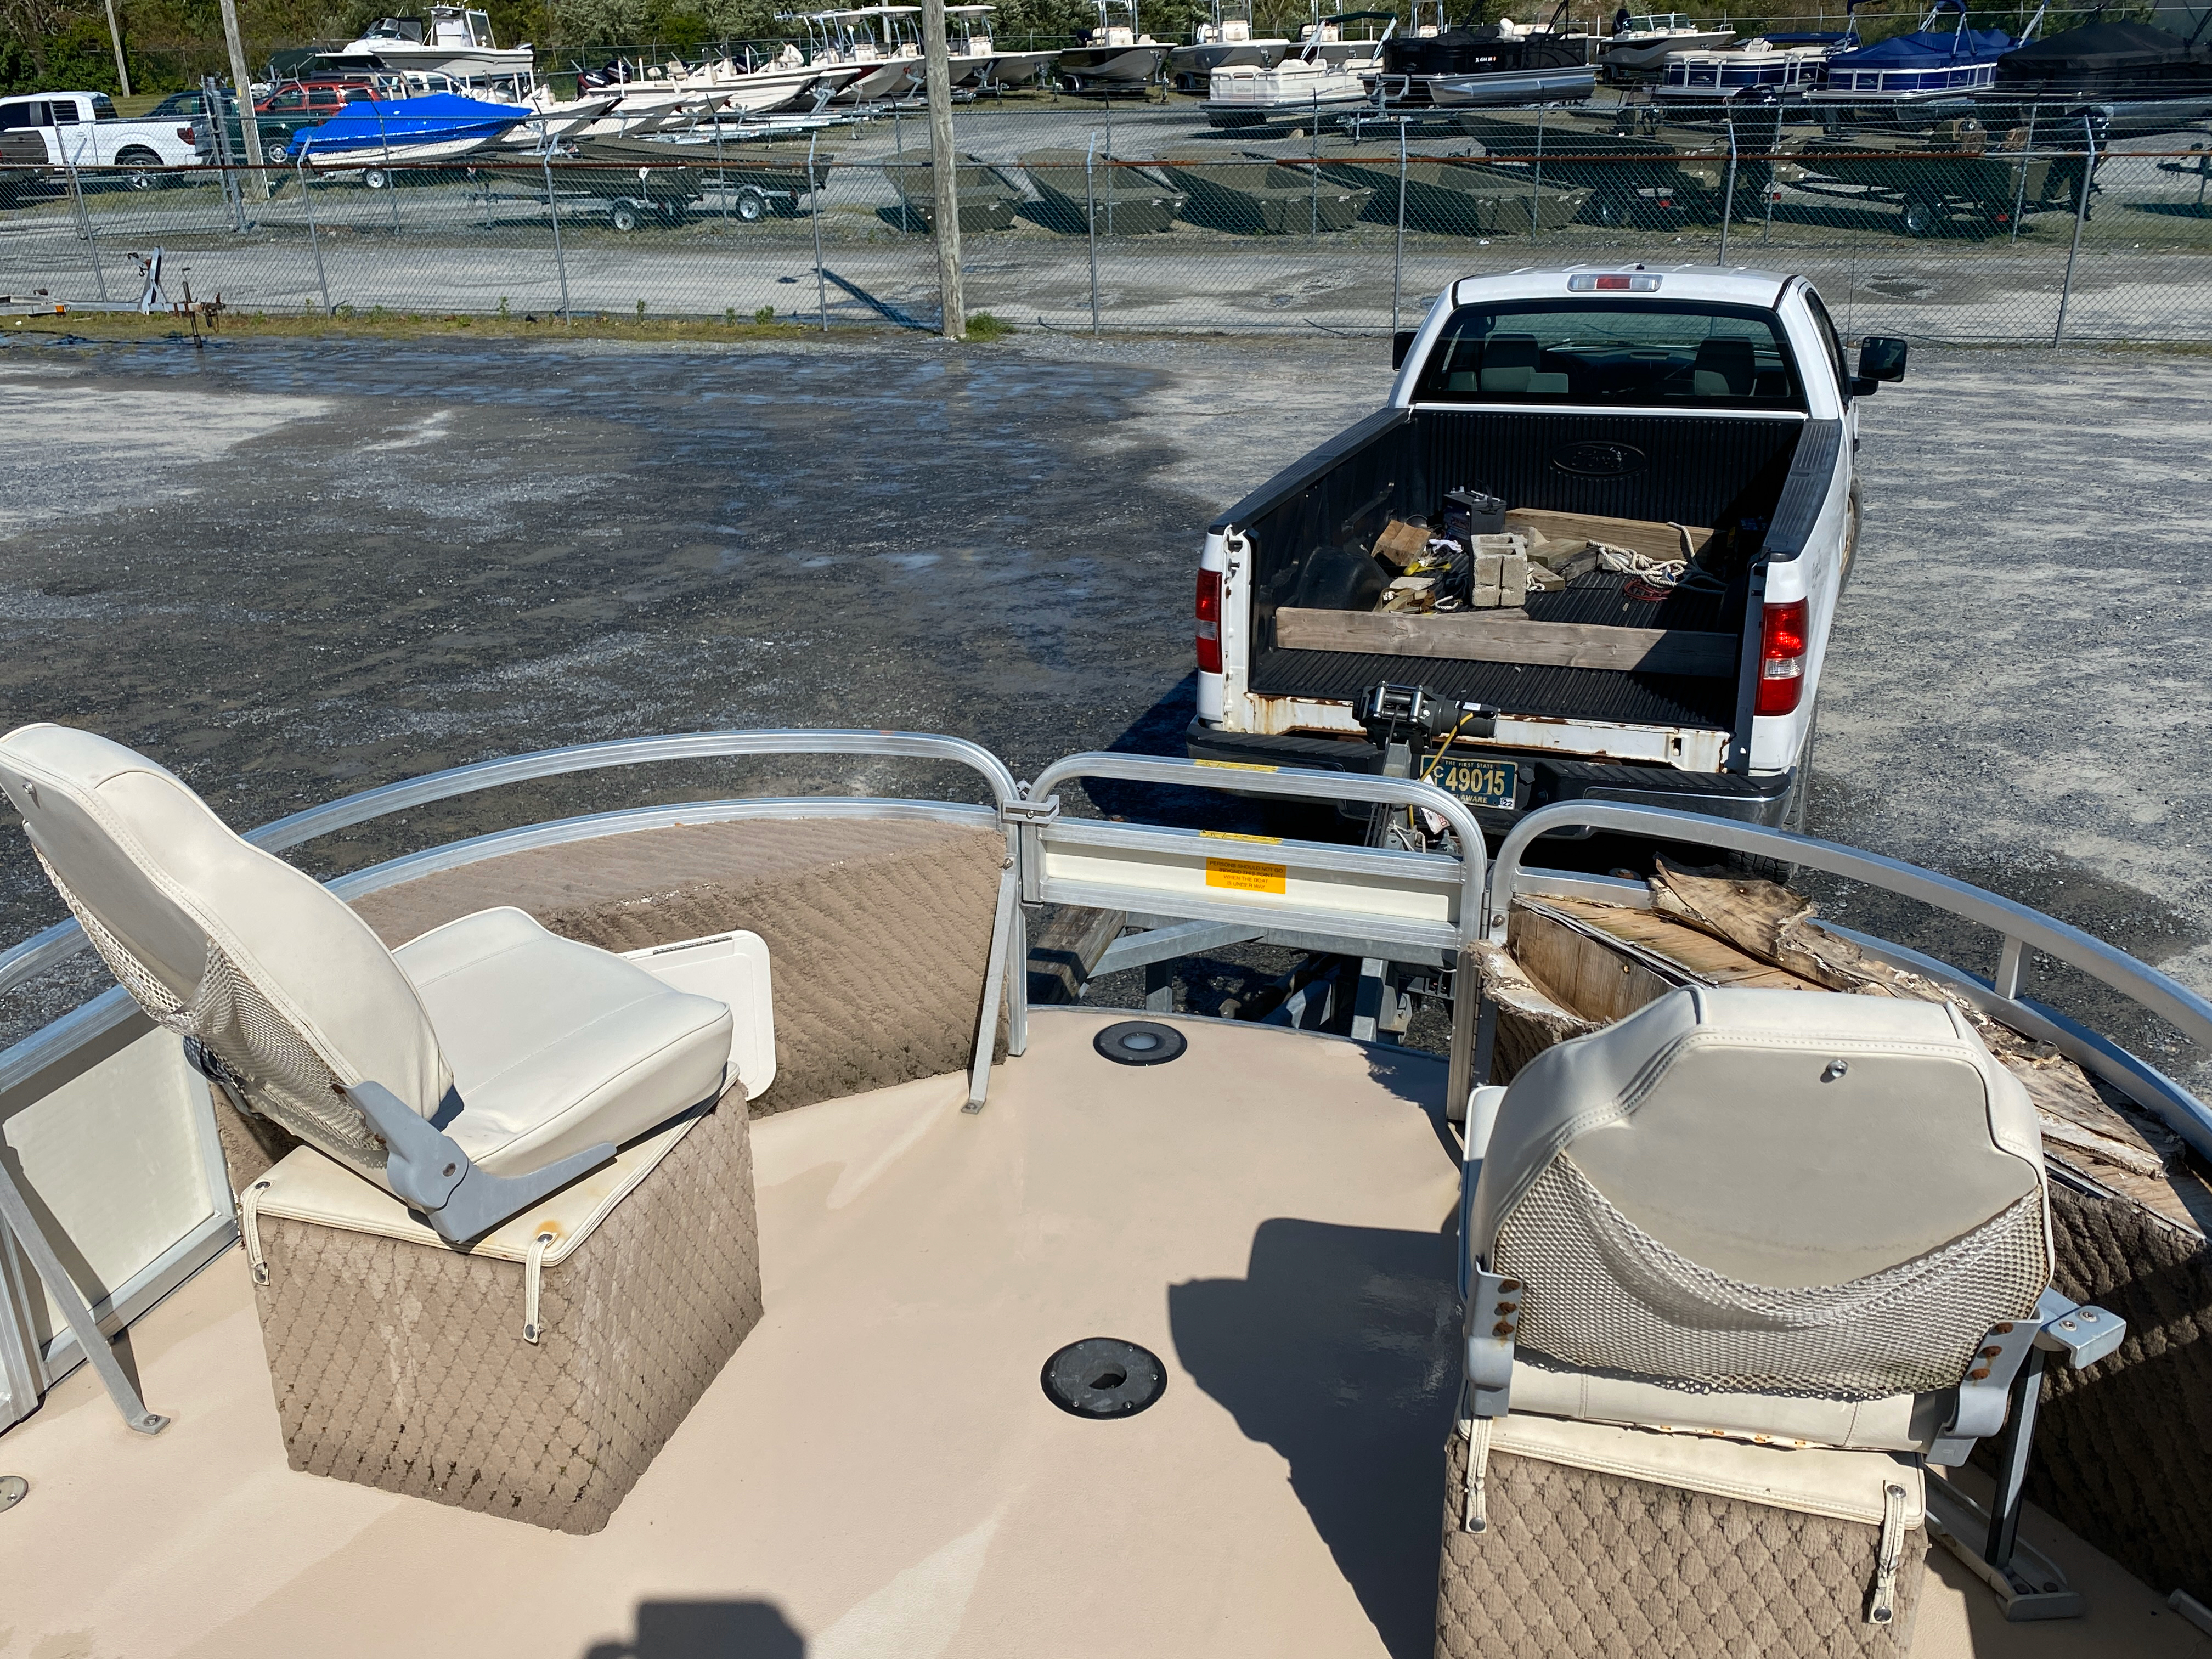 2002 Tahoe boat for sale, model of the boat is Grand Tahoe FNF & Image # 8 of 10